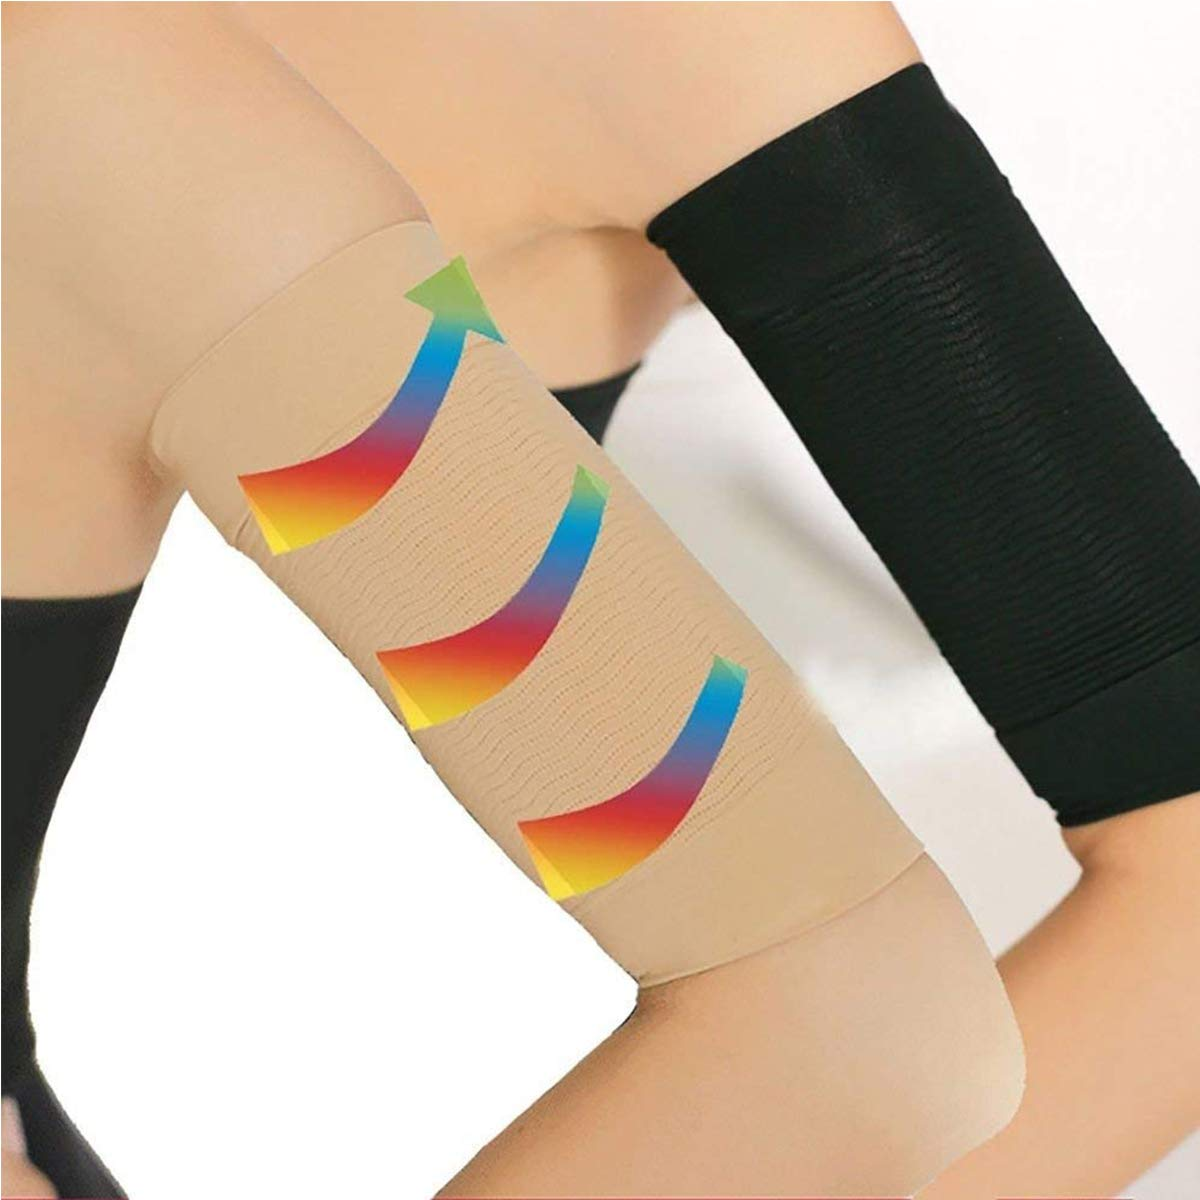 1Pair Elastic Compression Arm Sleeves Women Weight Loss Calories Slimming Arm Shaper Massager Arm Belt Slimming Compression